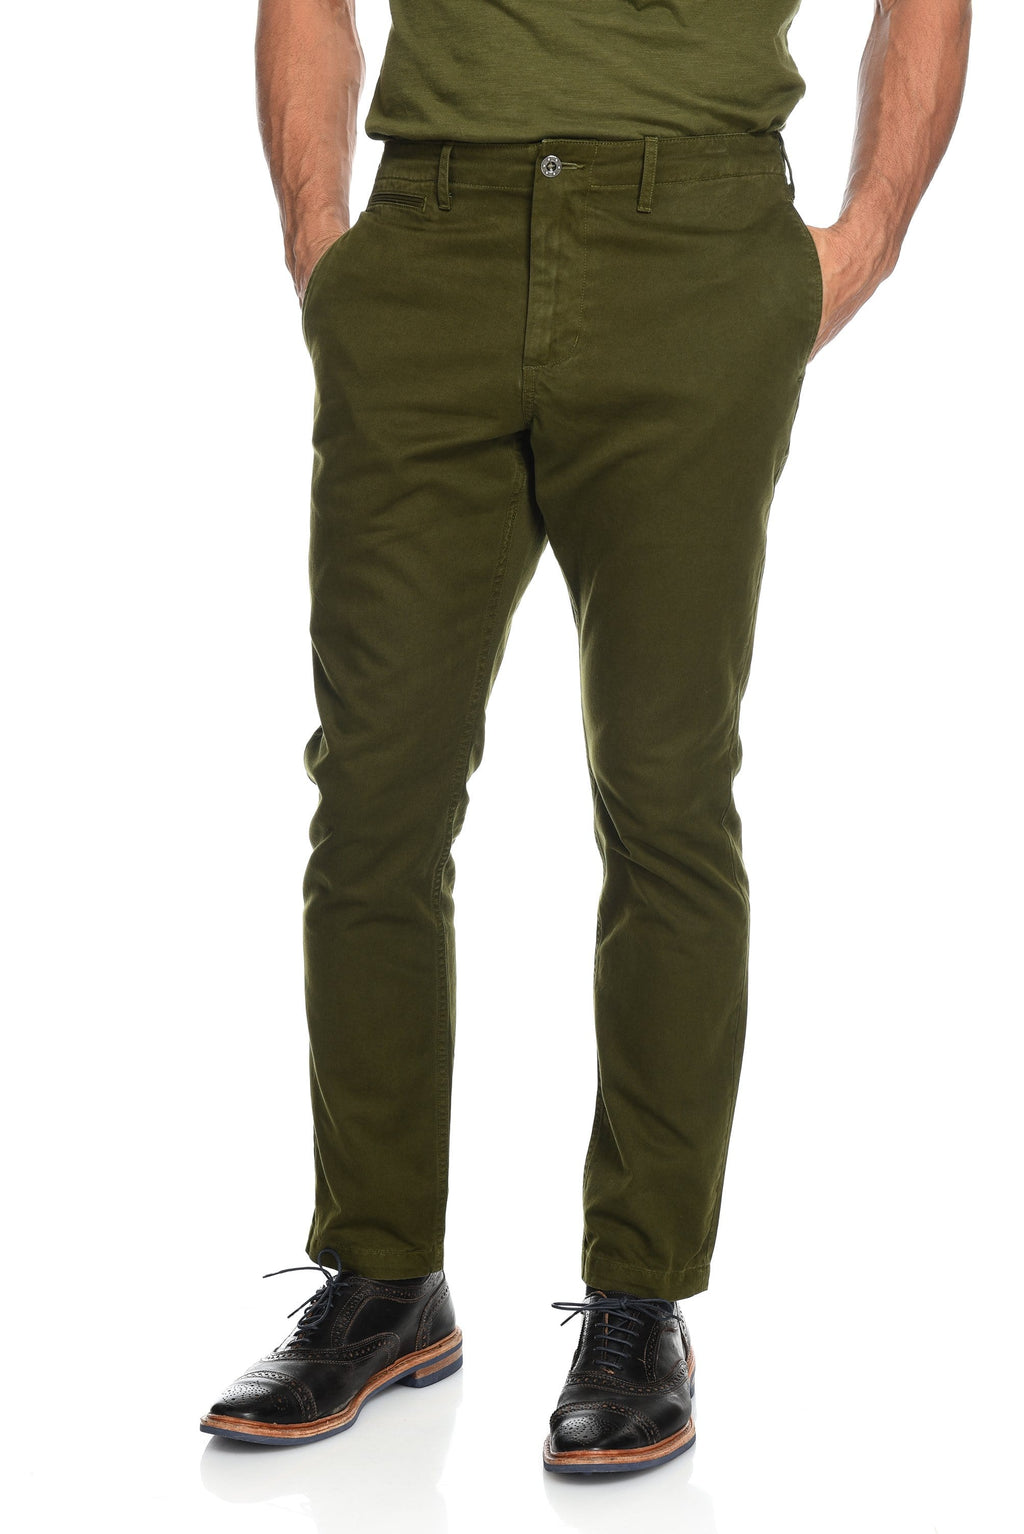 Officer and Gentlemen Pants Men's